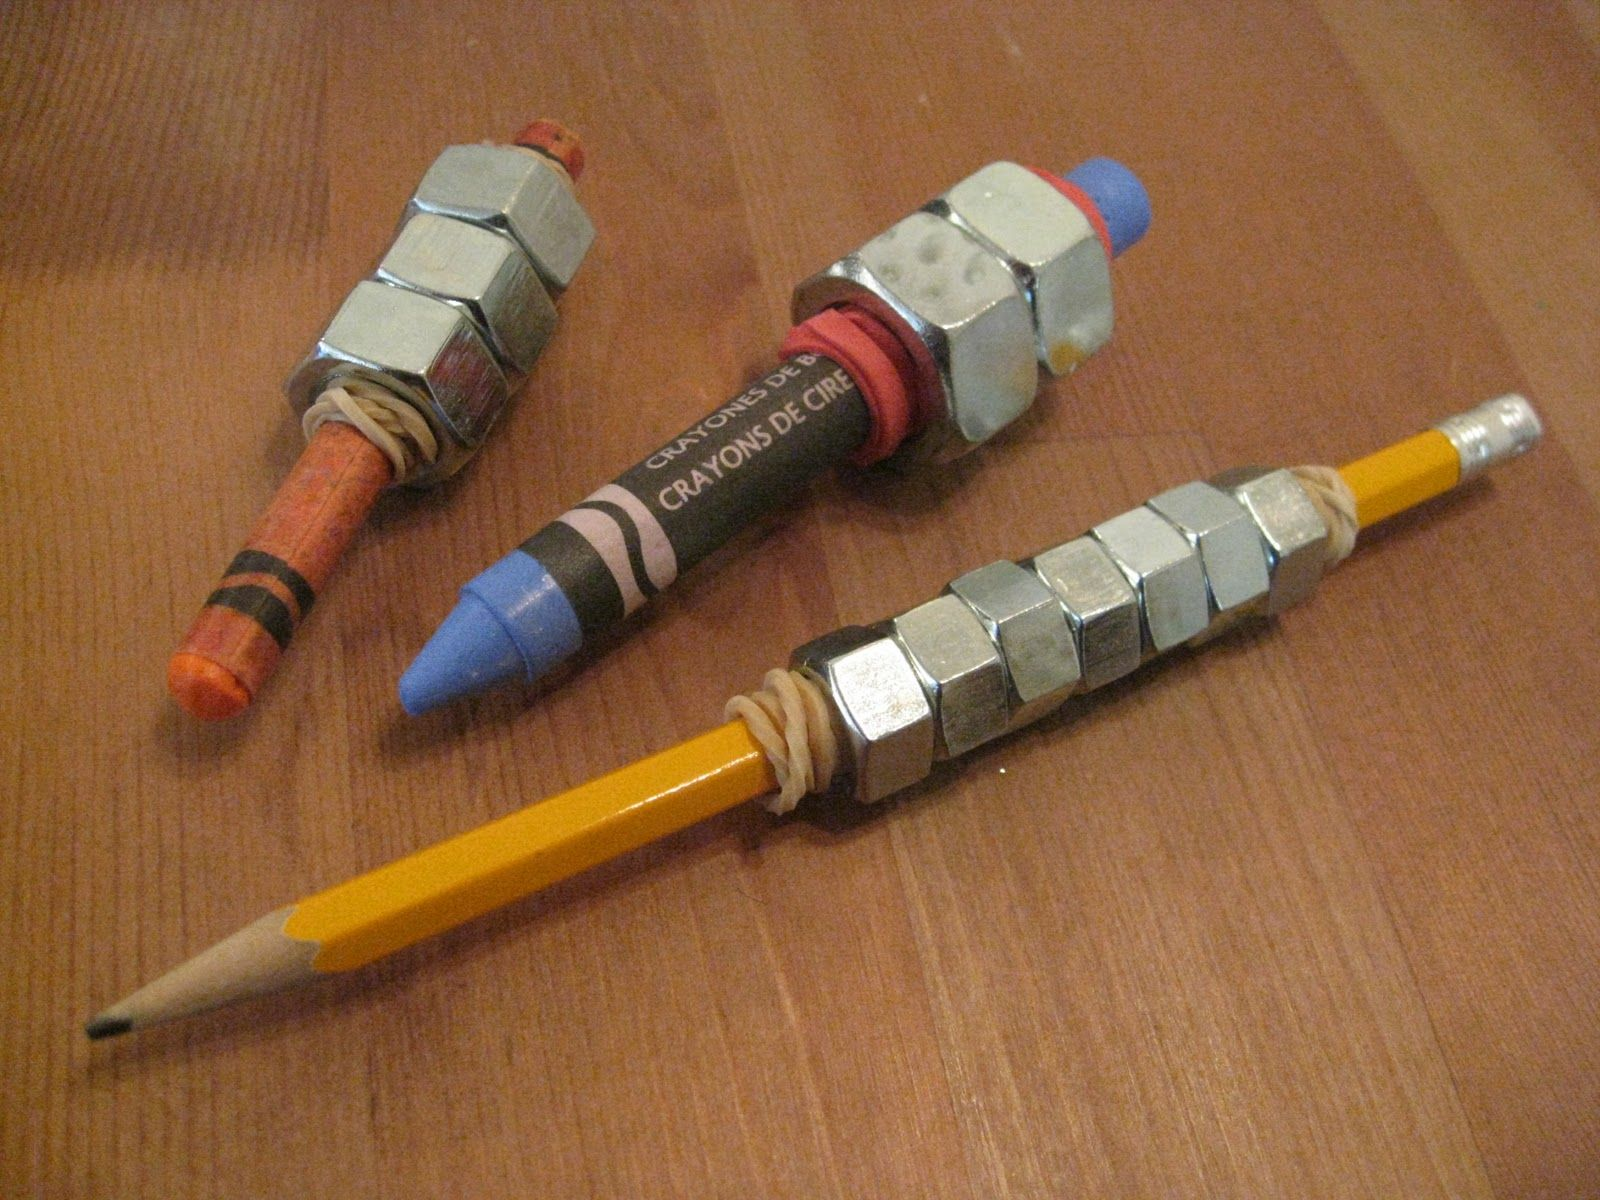 Ot Great Home Solution Weighted Pencils Can Be